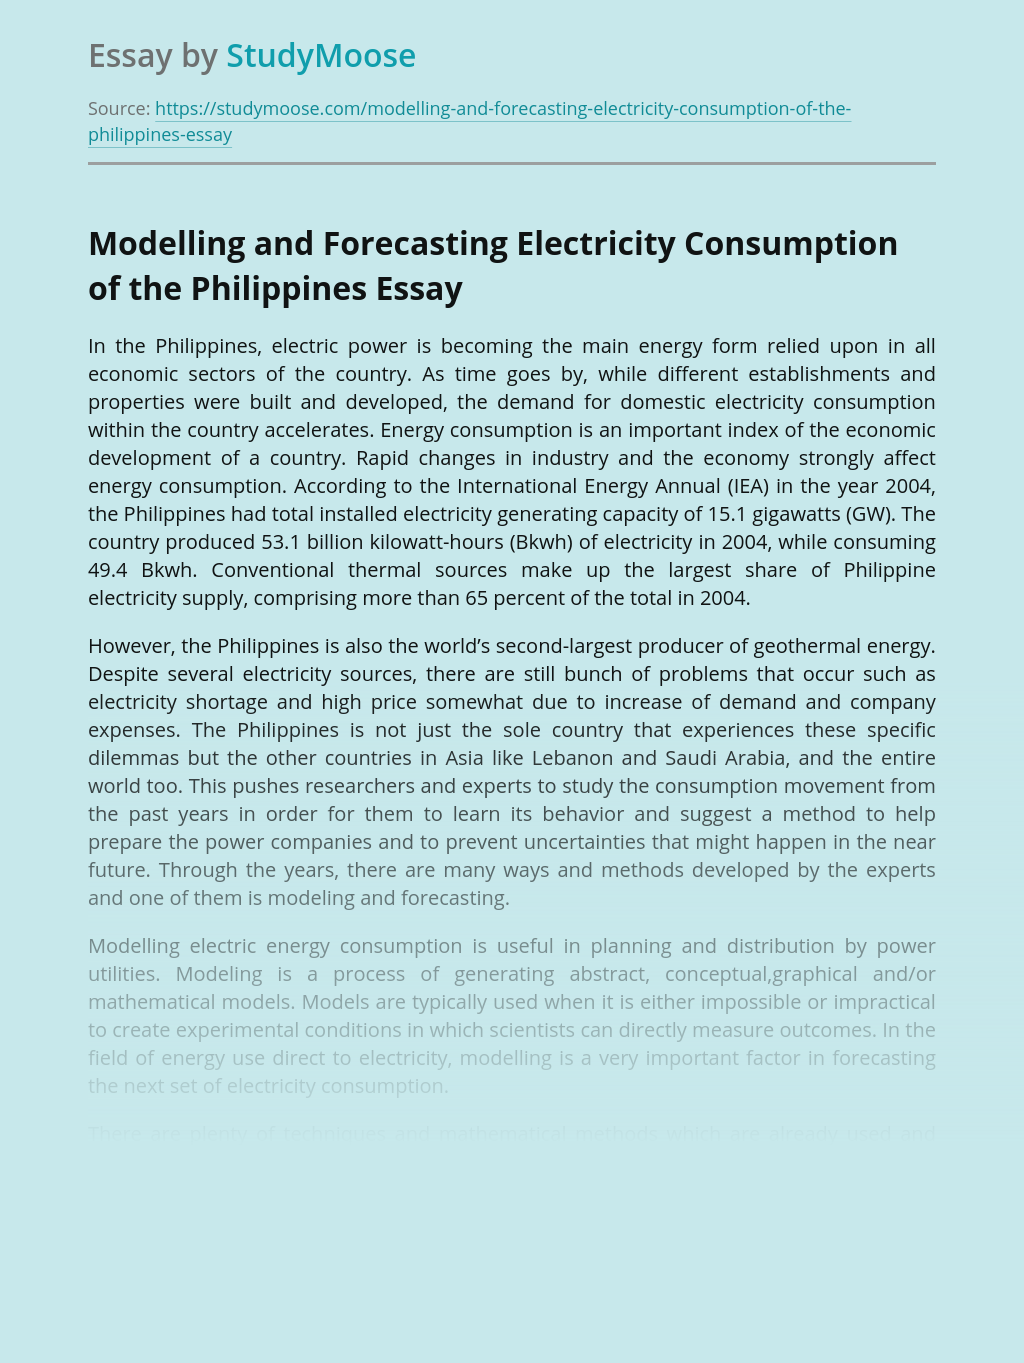 Modelling and Forecasting Electricity Consumption of the Philippines